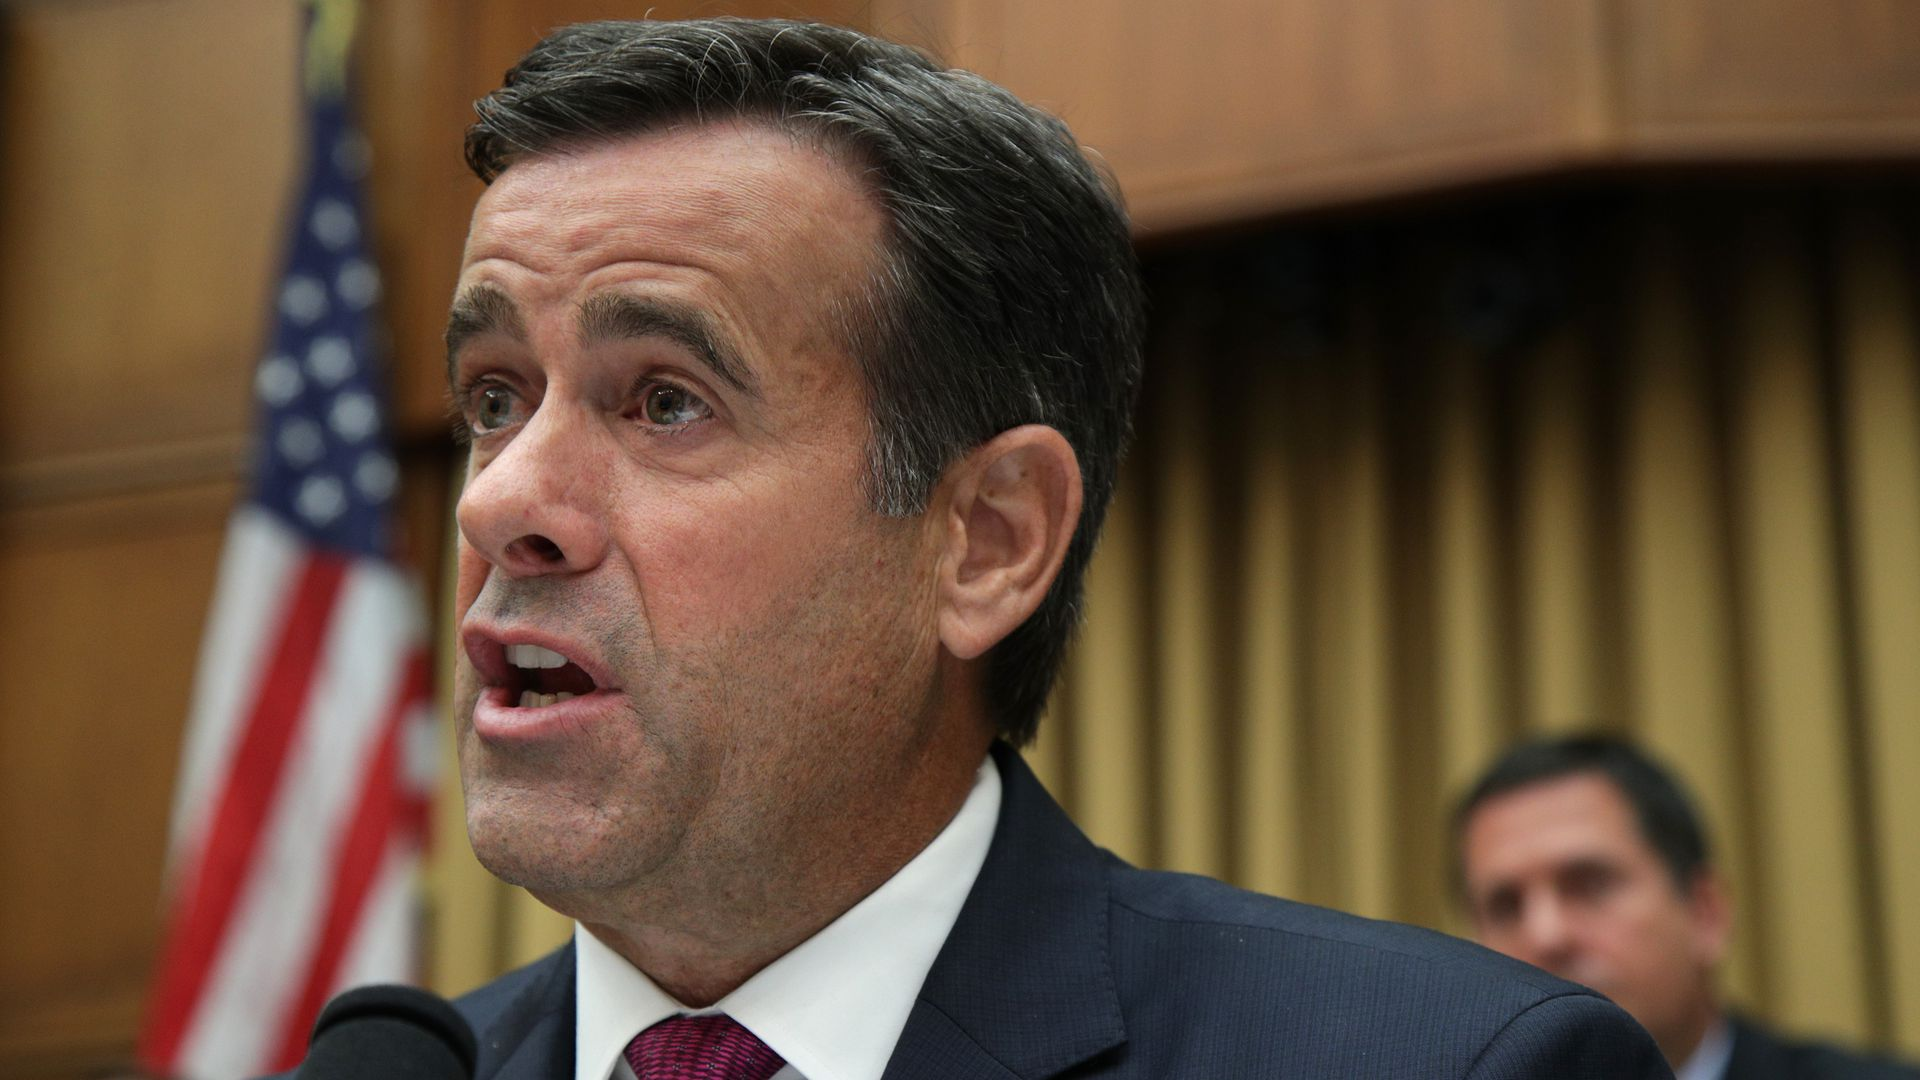 This image shows Ratcliffe speaking while wearing a suit at a hearing.